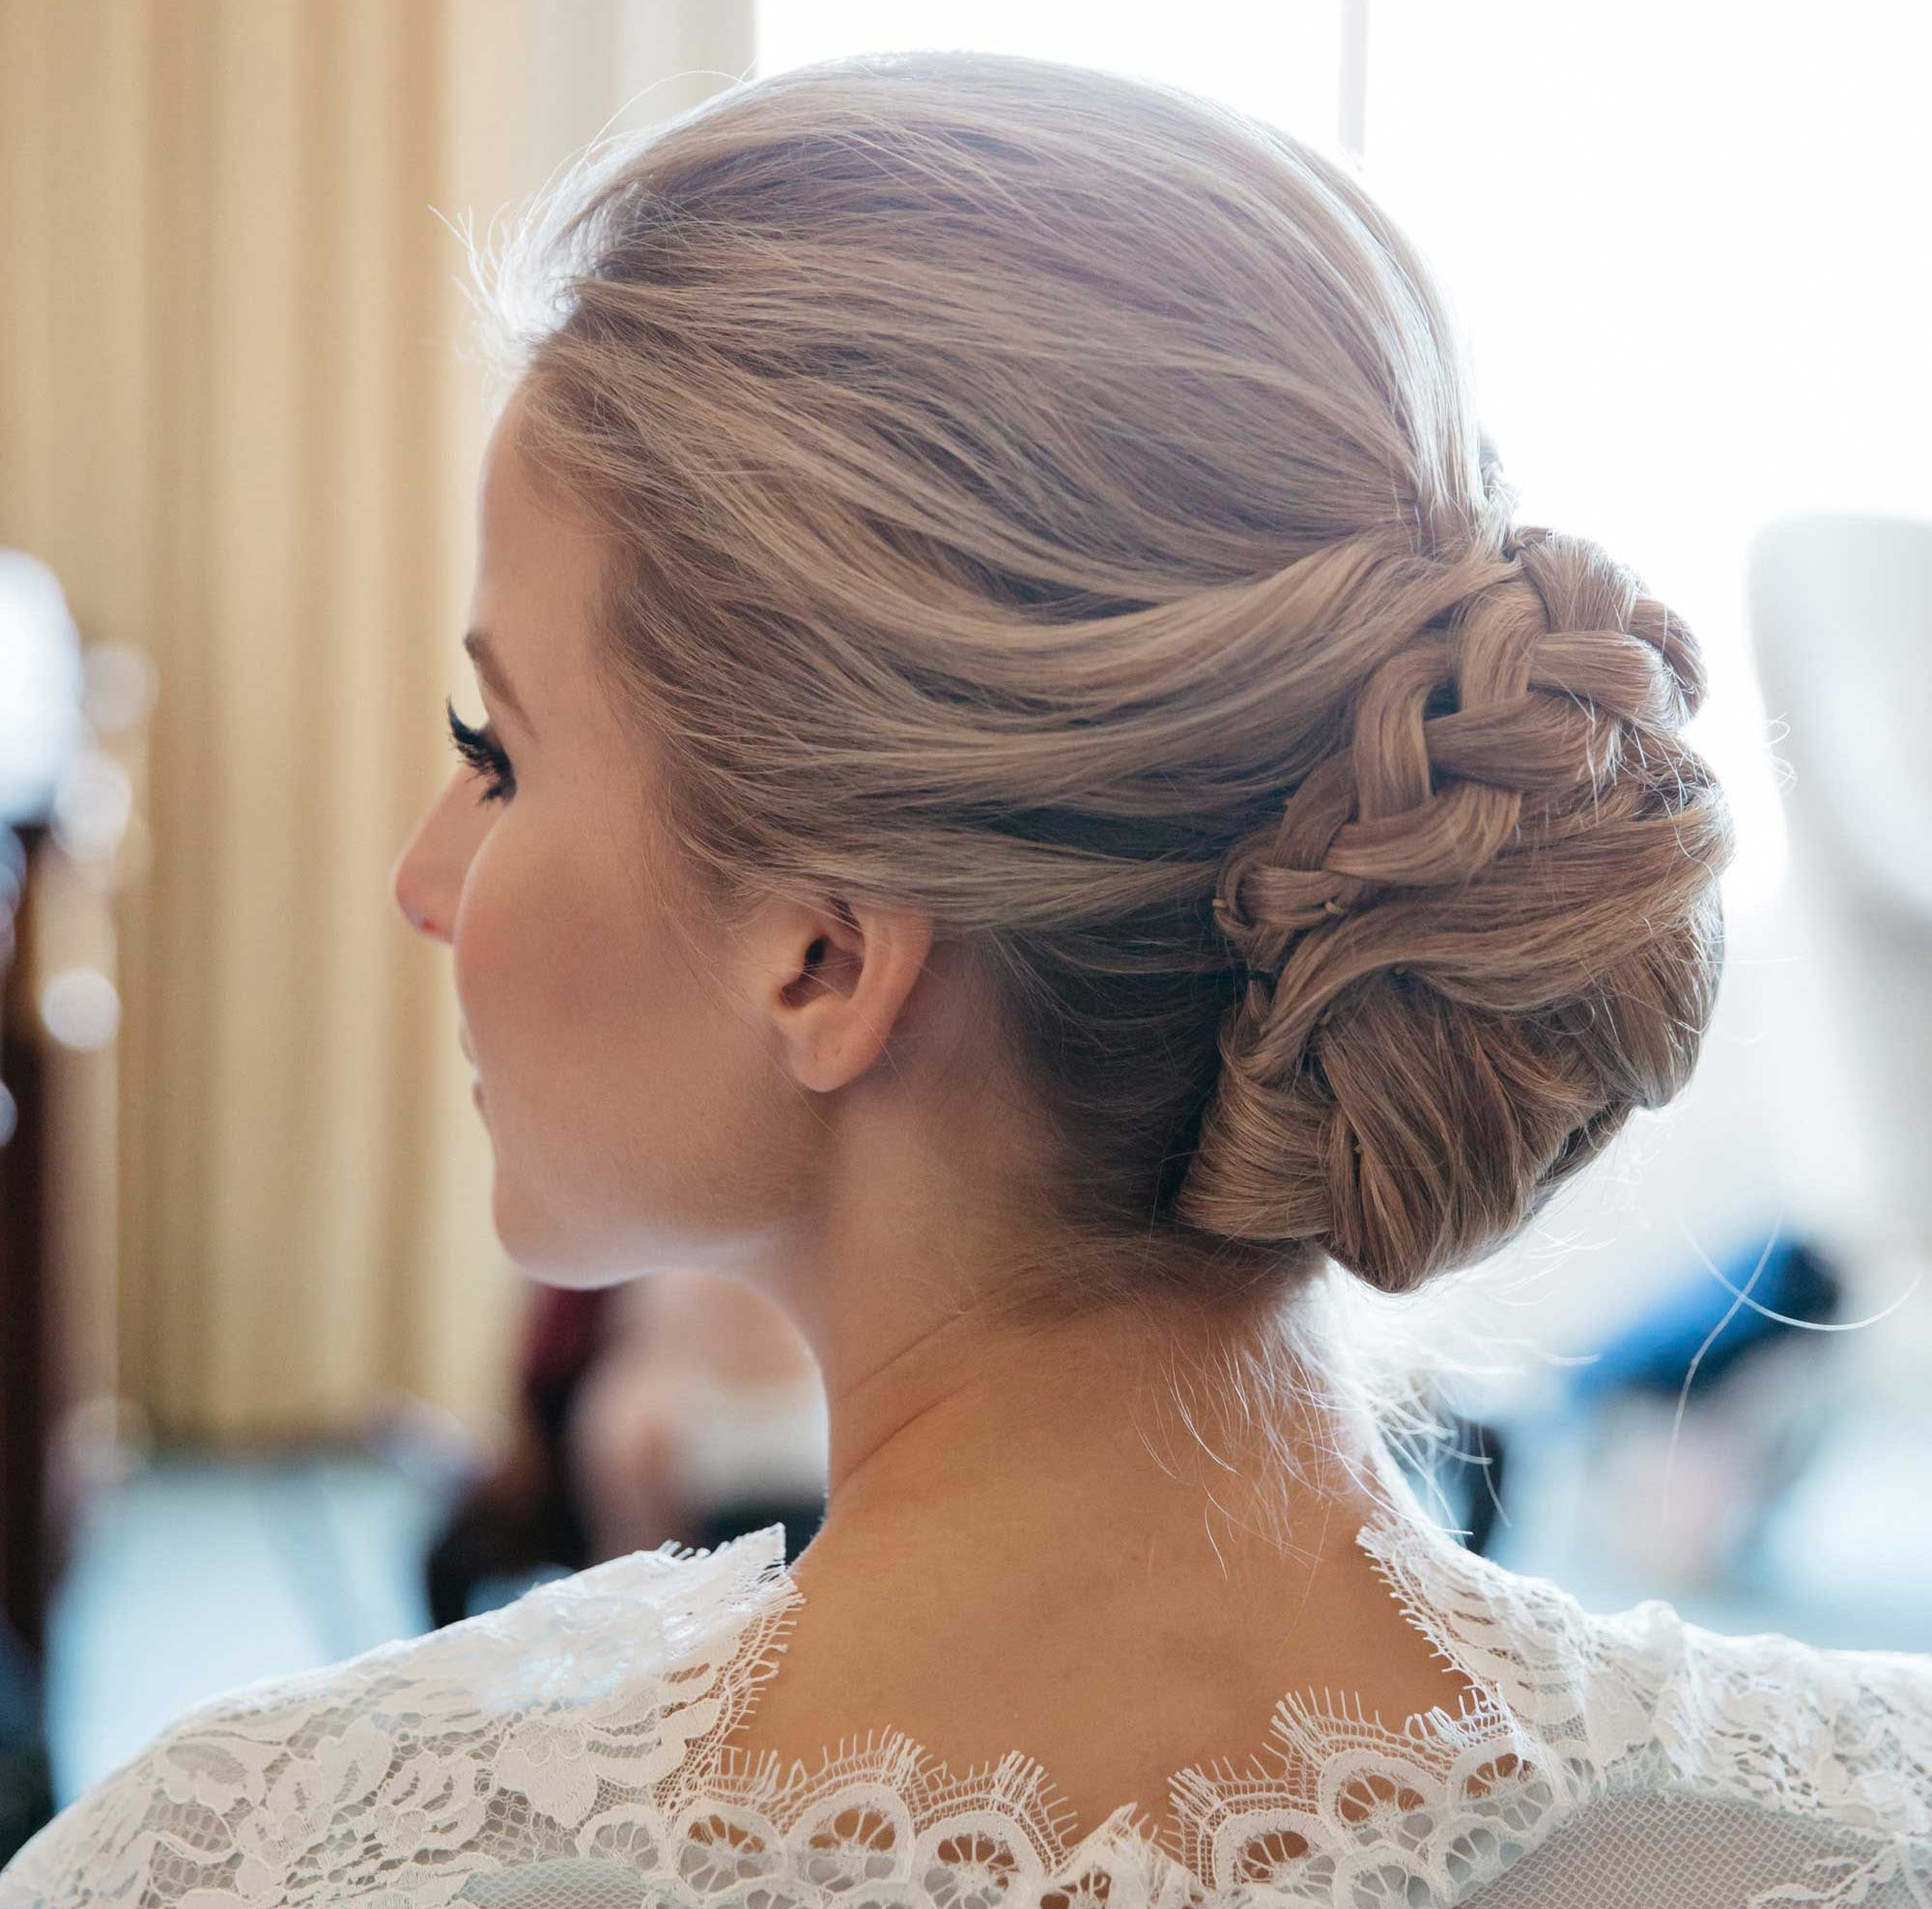 Current Wedding Braided Hairstyles For Long Hair Pertaining To Braided Hairstyles: 5 Ideas For Your Wedding Look – Inside Weddings (View 7 of 15)